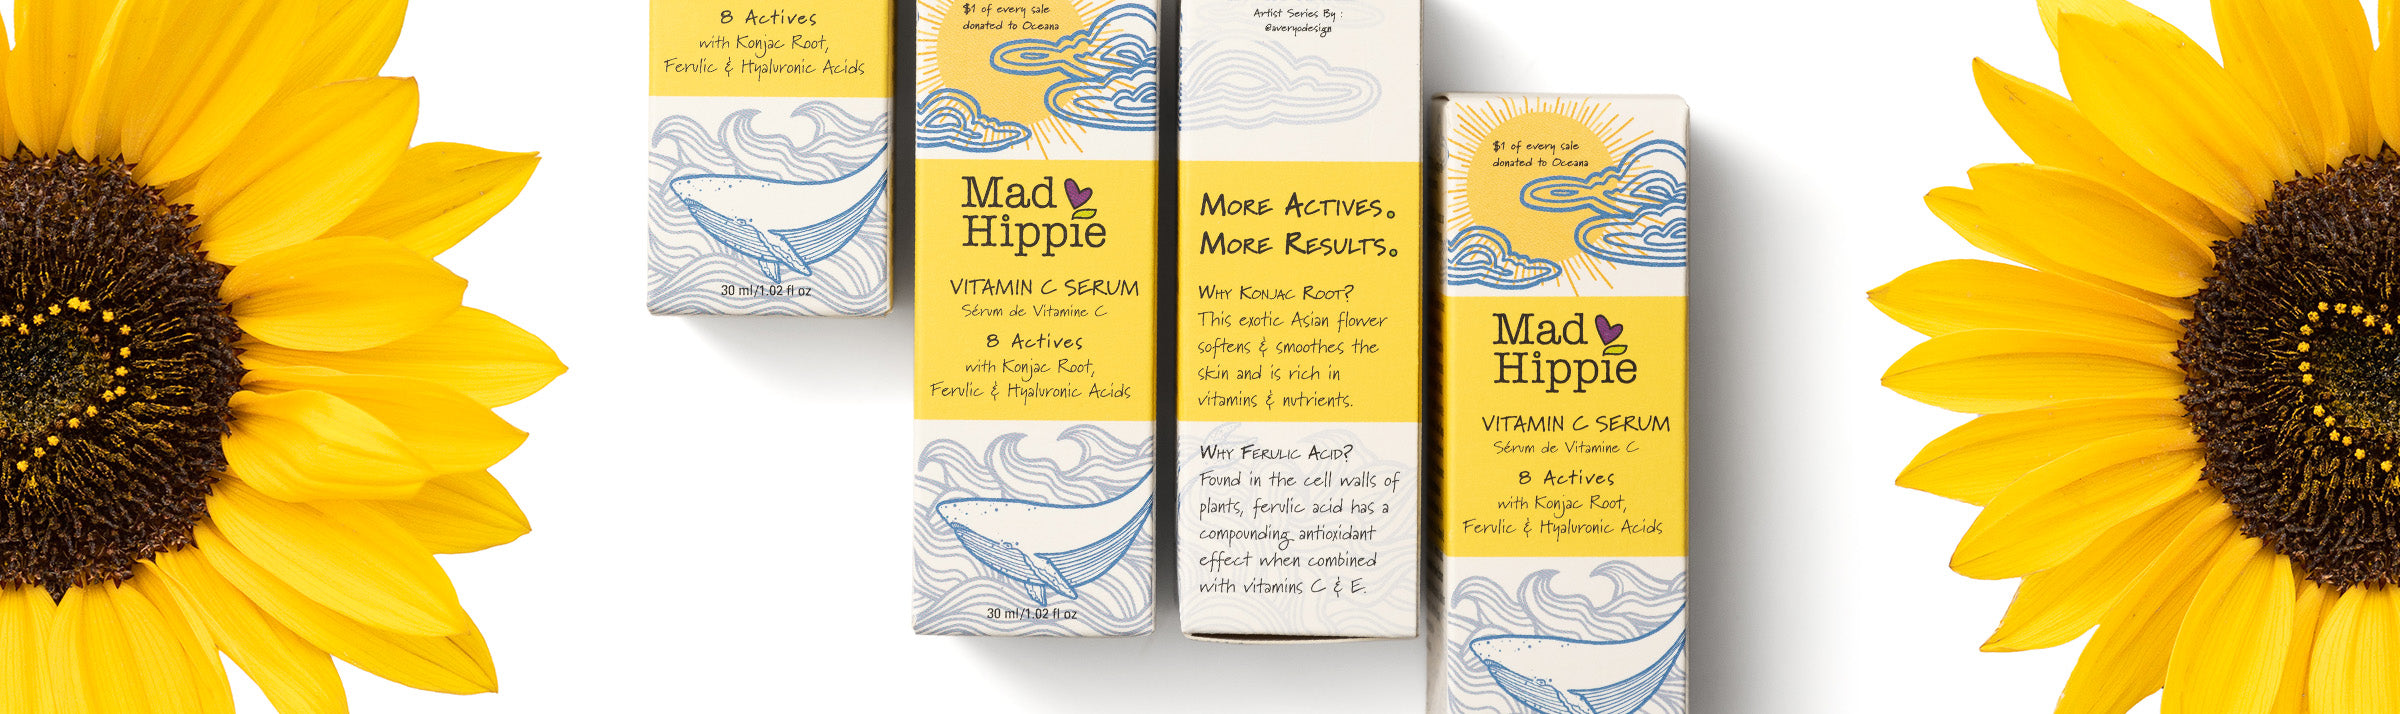 Mad Hippie Vitamin C Artists Series Boxes